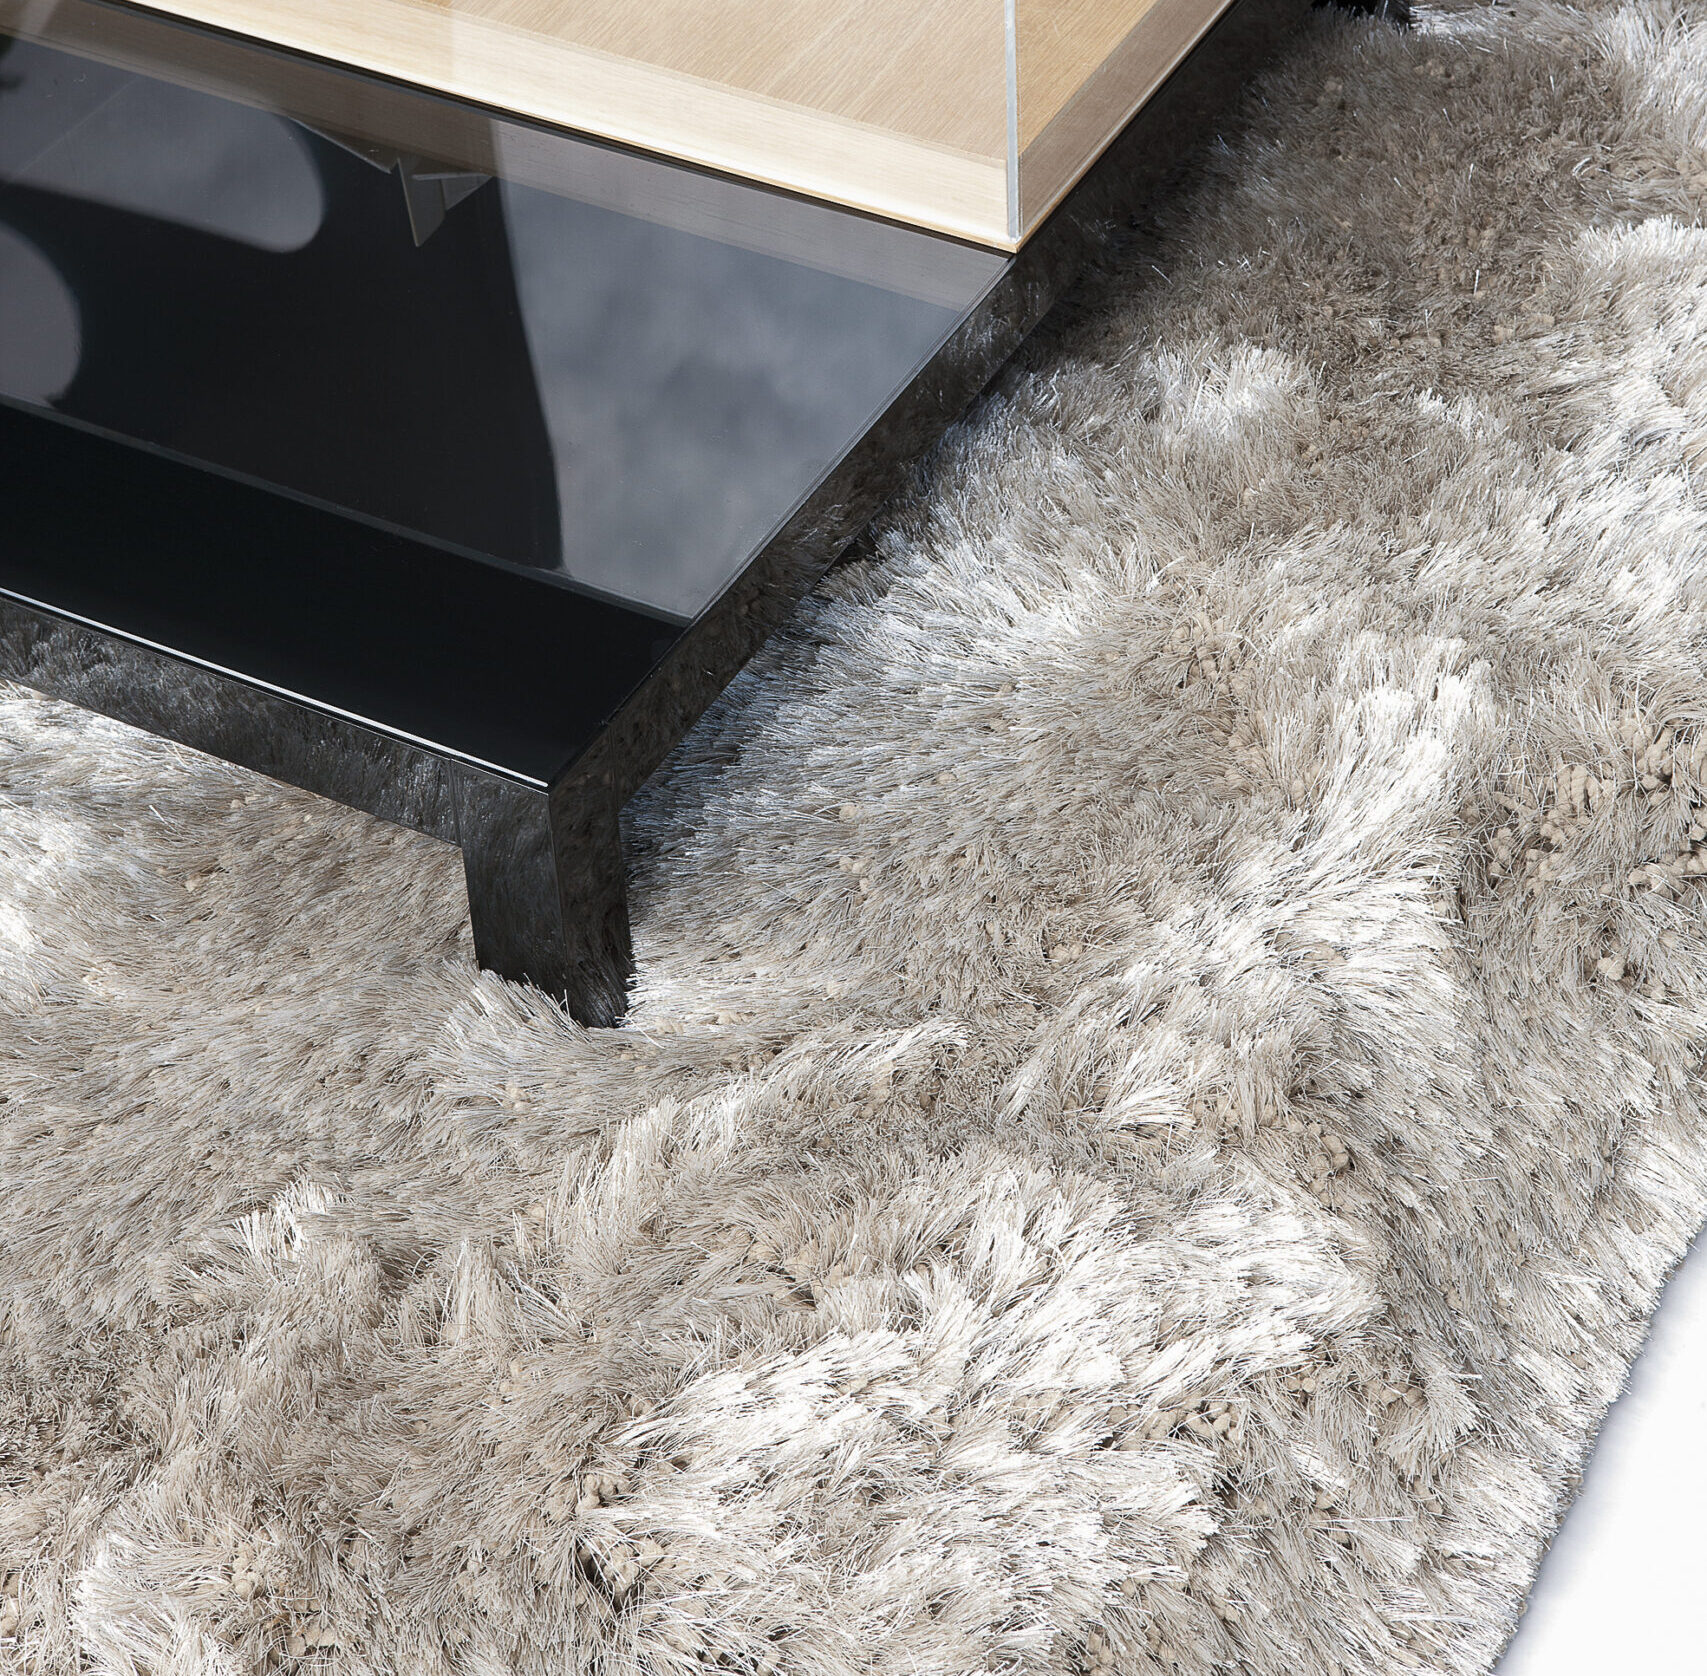 Comment Laver Un Tapis De Salon comment nettoyer un tapis à poils longs ? - blog tapis-chic